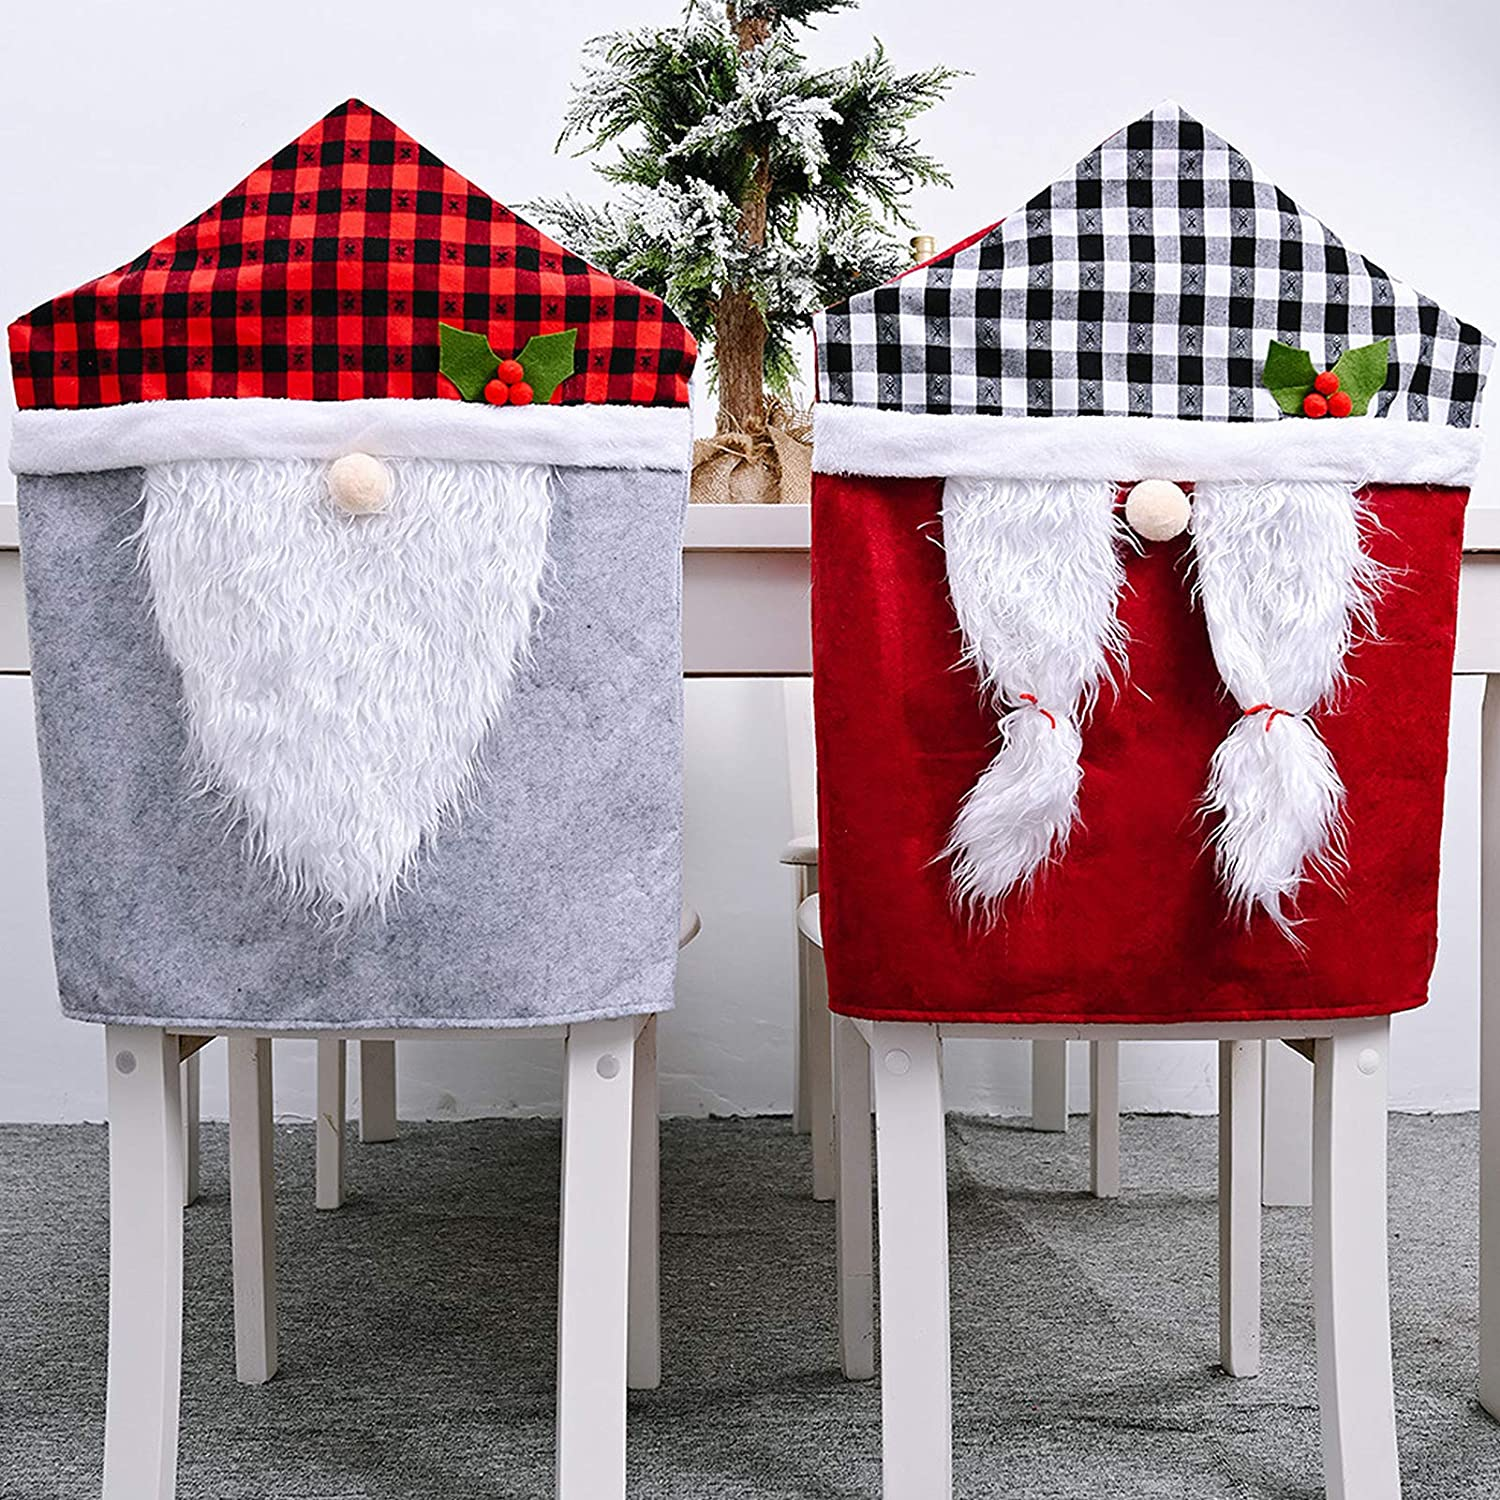 Set of 4 Christmas Gnome Chair Covers- Buffalo Checker Plaid Hat Gnome Chair Slipcover Suits Santa Hat Chair Back Dining Chair Covers for Christmas Banquet Holiday Festival Decor (Red and Gray)